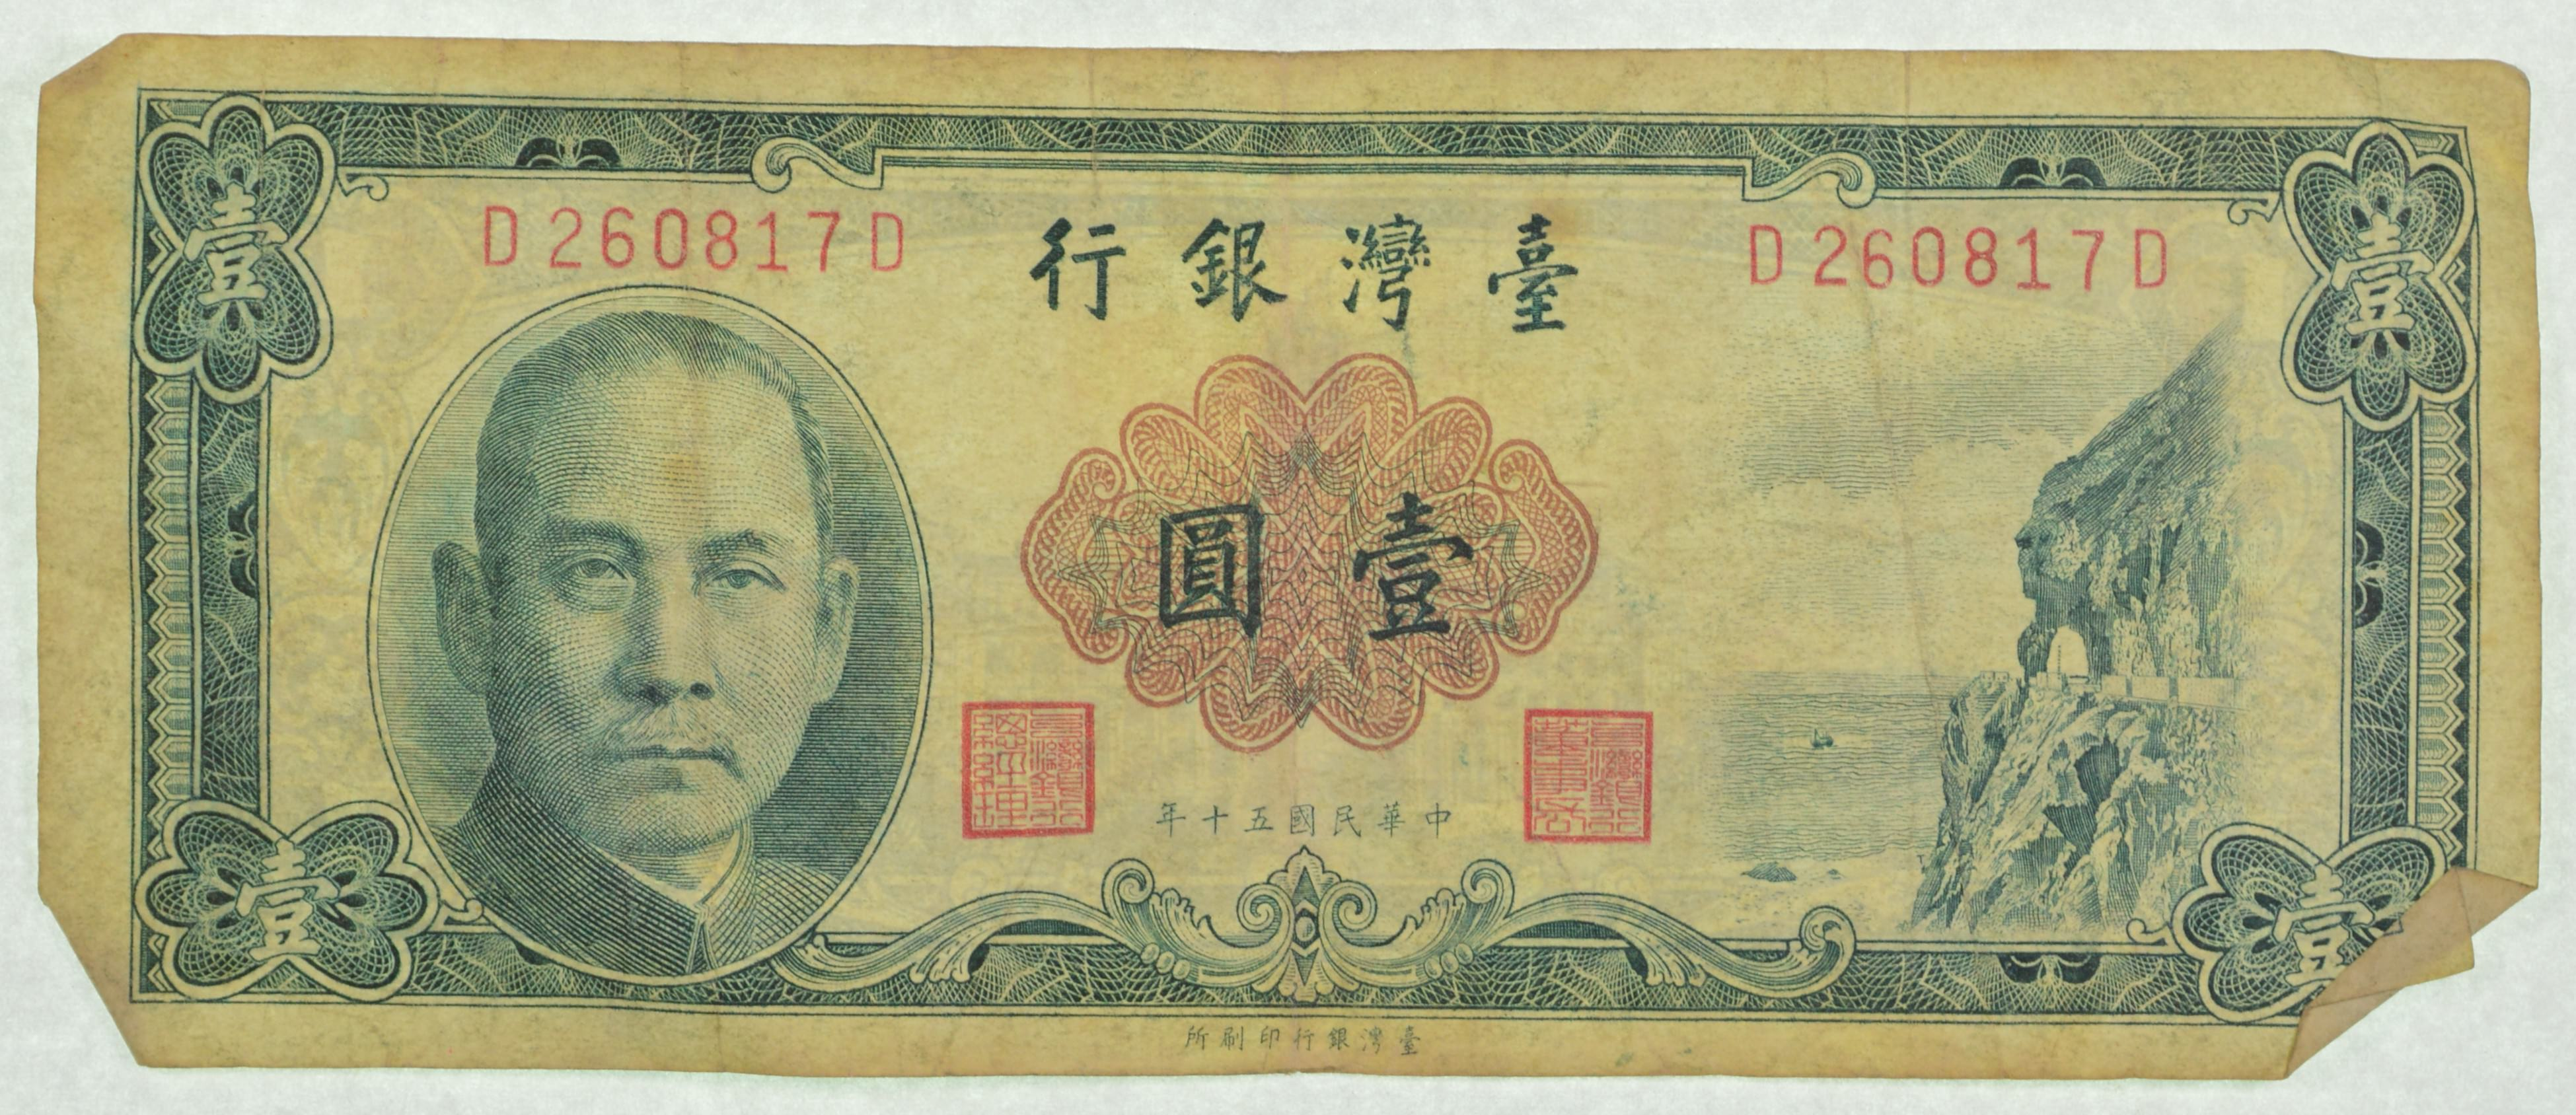 Vintage Chinese Paper Money Currency Very Hard China